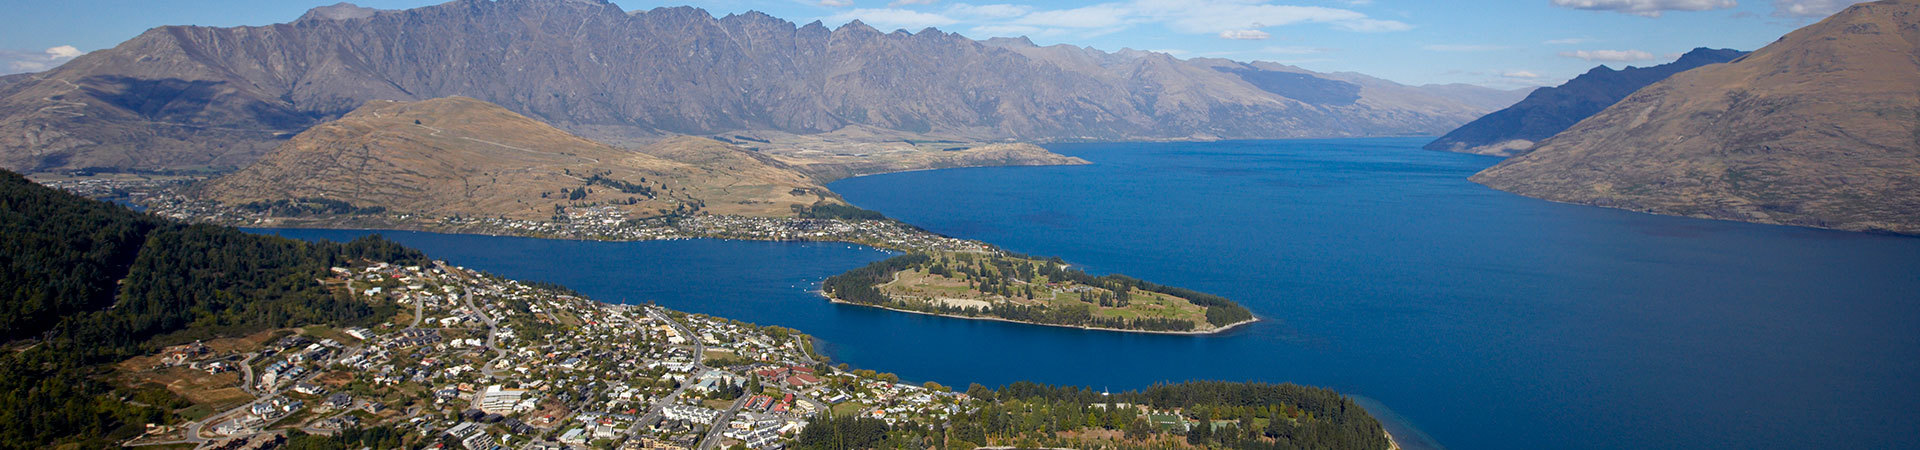 View of Queenstown and Lake Wakatipu